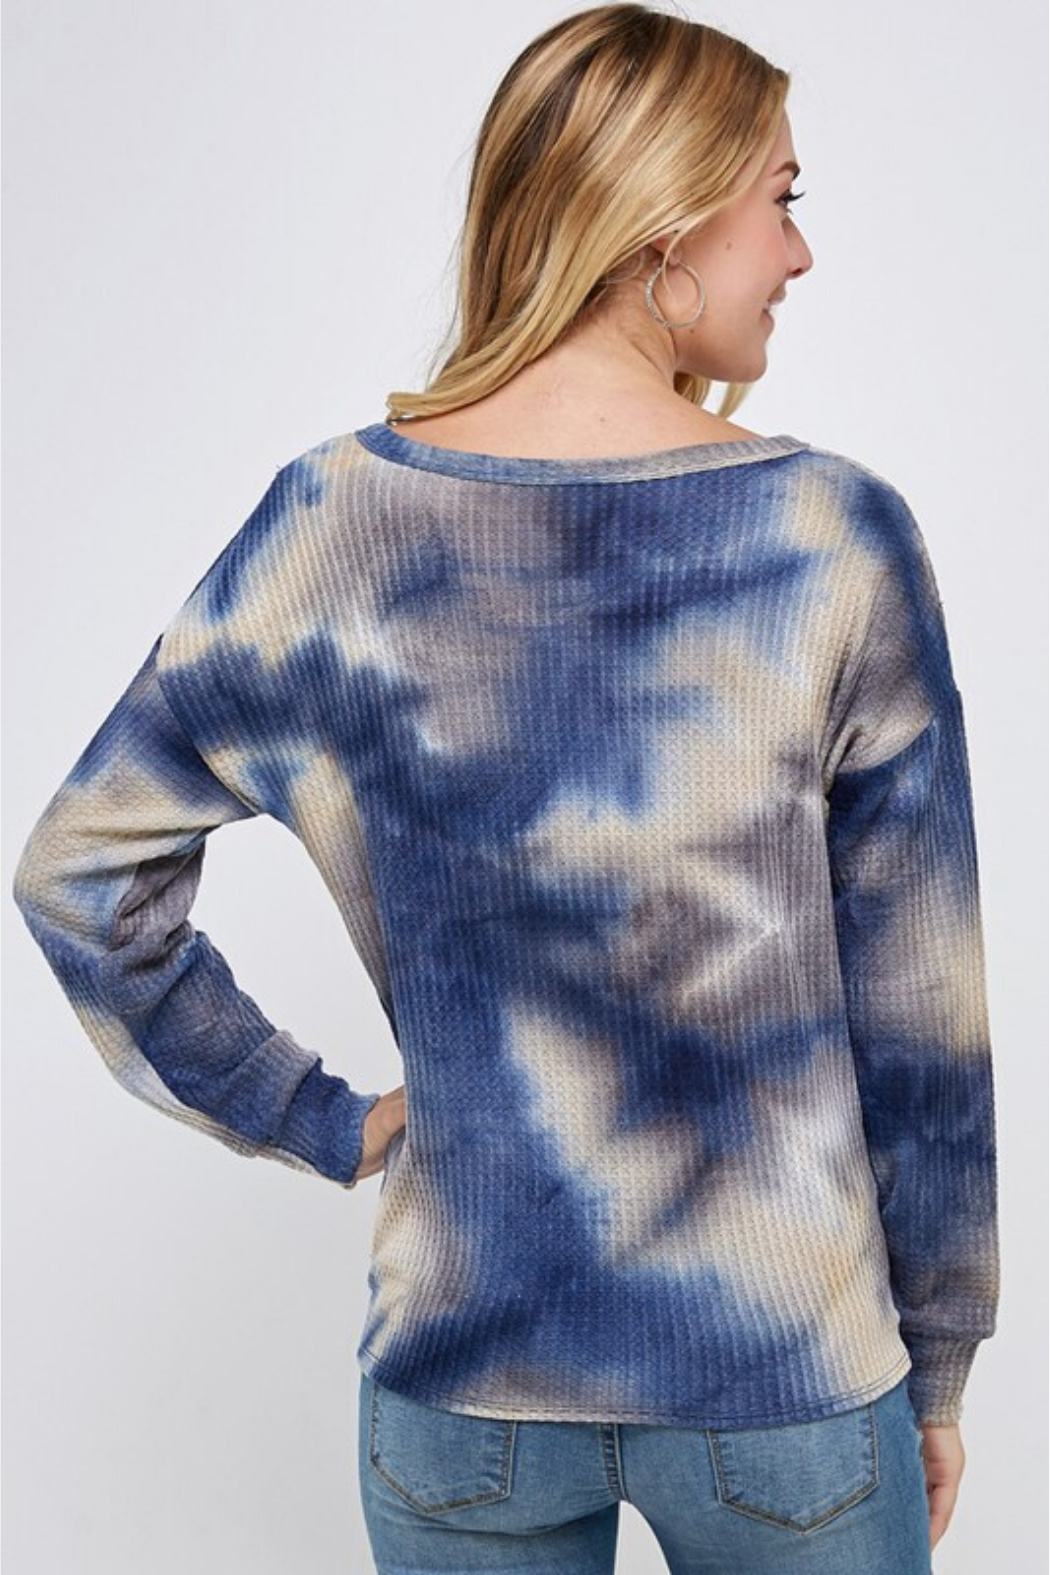 Able USA Tie Dye Tie Front Sweater - Front Full Image